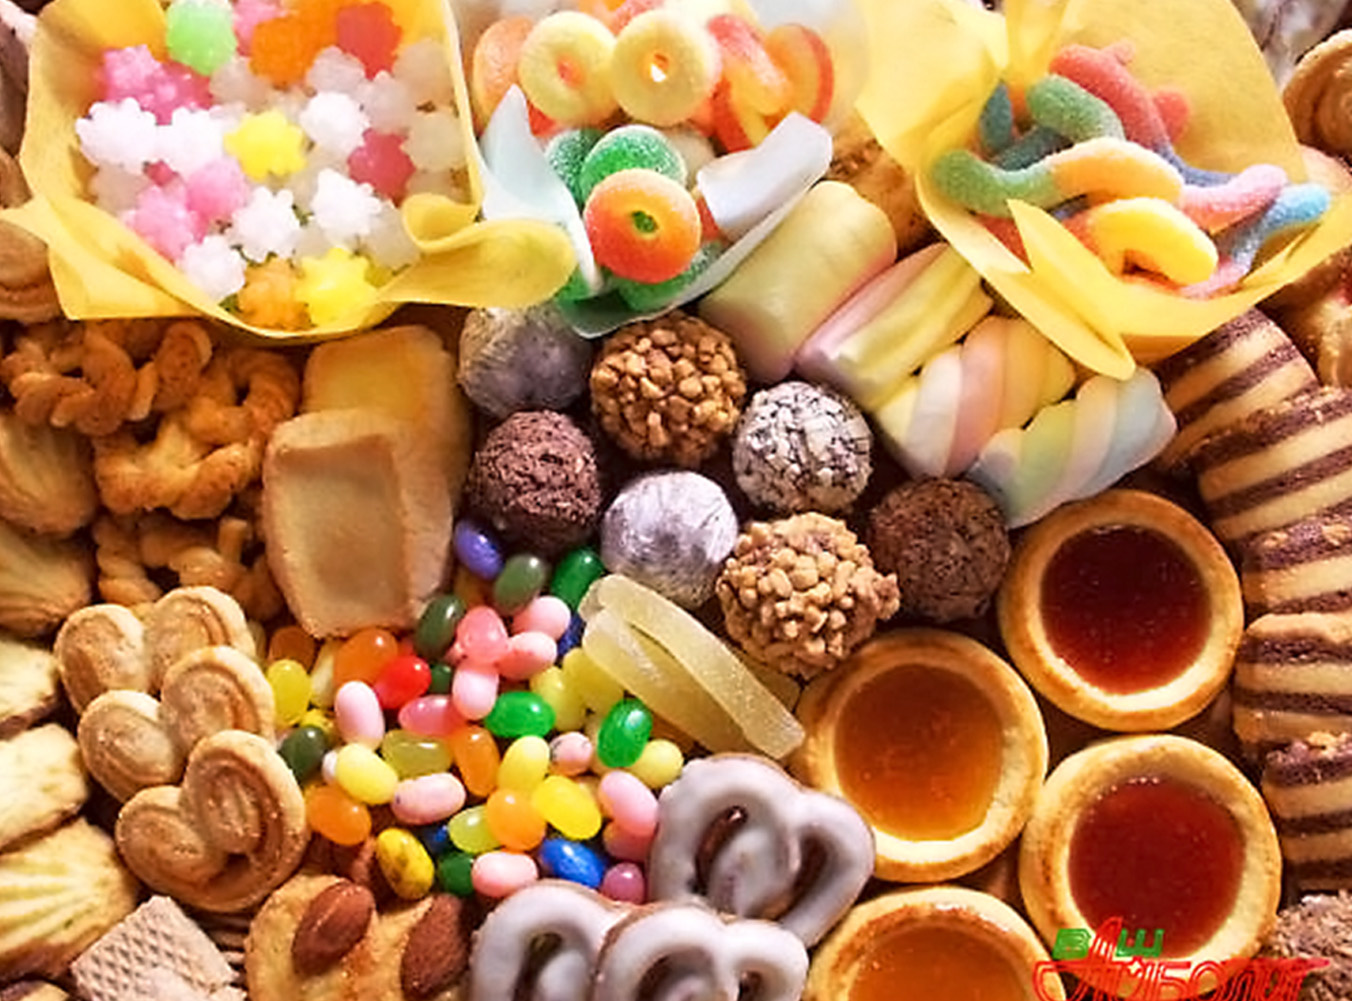 confectionaries Welcome to subhlaxmi grocers - houston chain of indian grocery stores that offers customers the widest range of food products, ethnics handicrafts & gift articles, where you get.